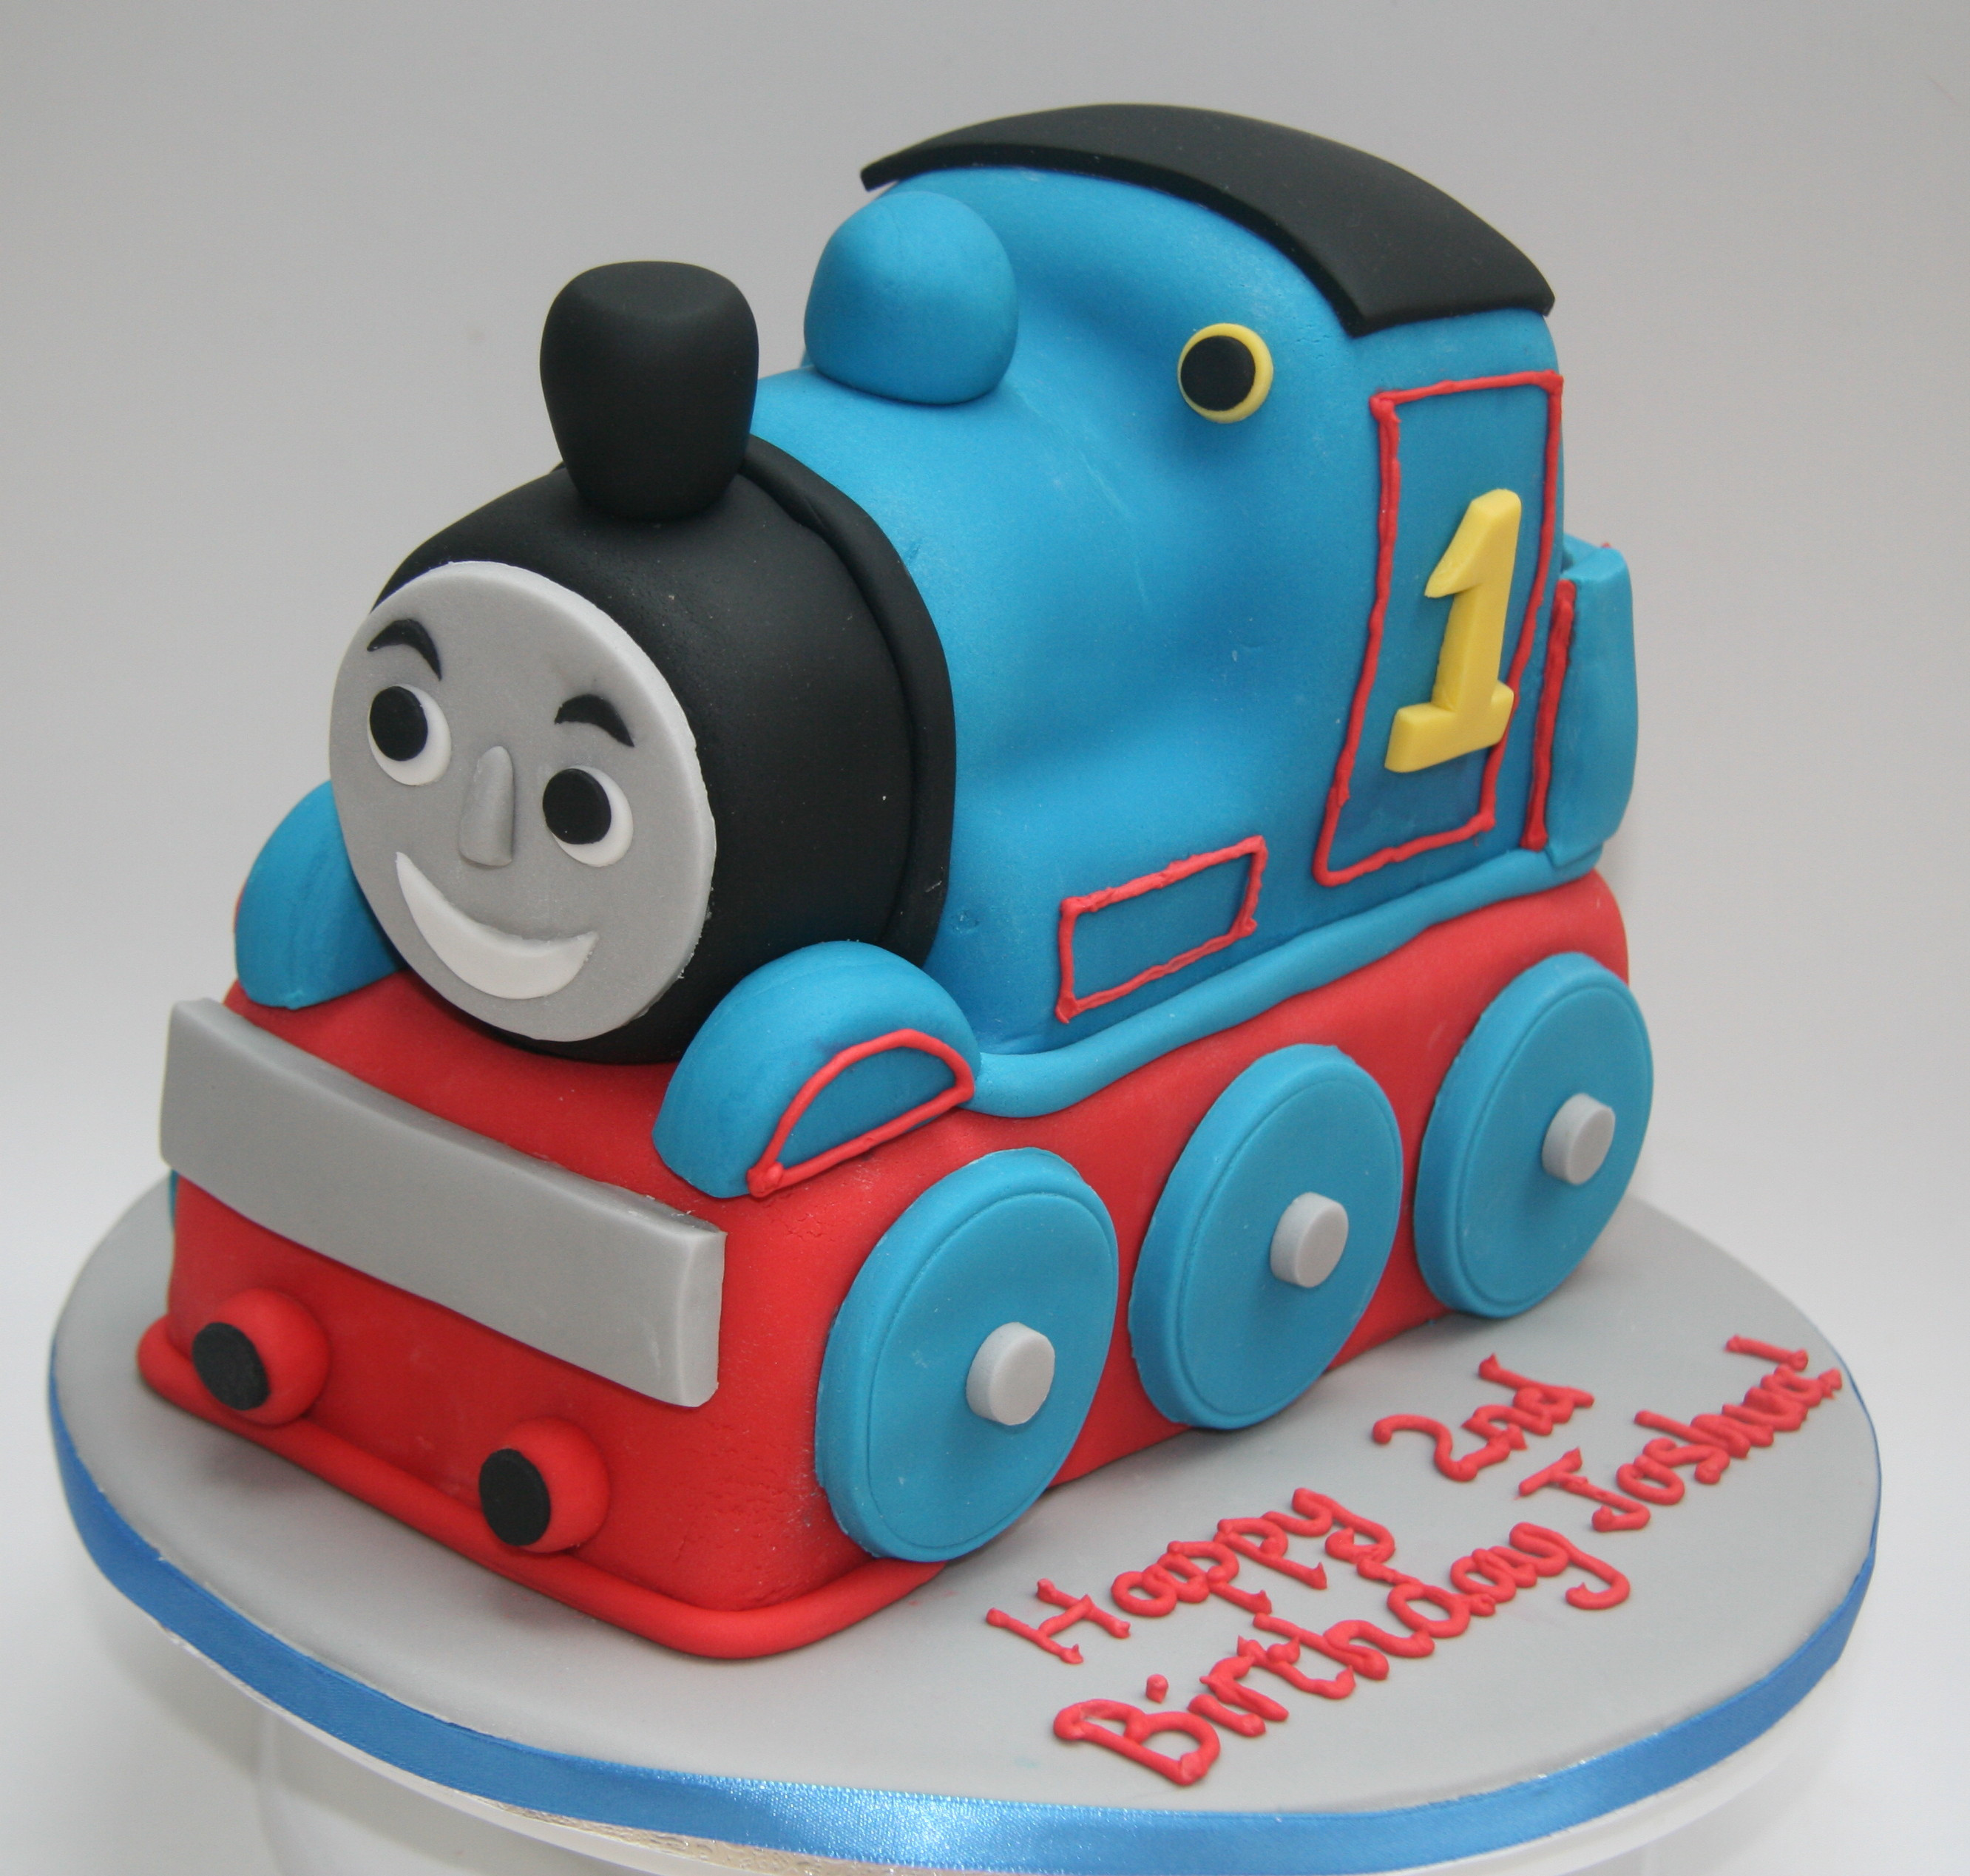 Best ideas about Thomas Birthday Cake . Save or Pin Thomas the Tank Engine Cake Now.